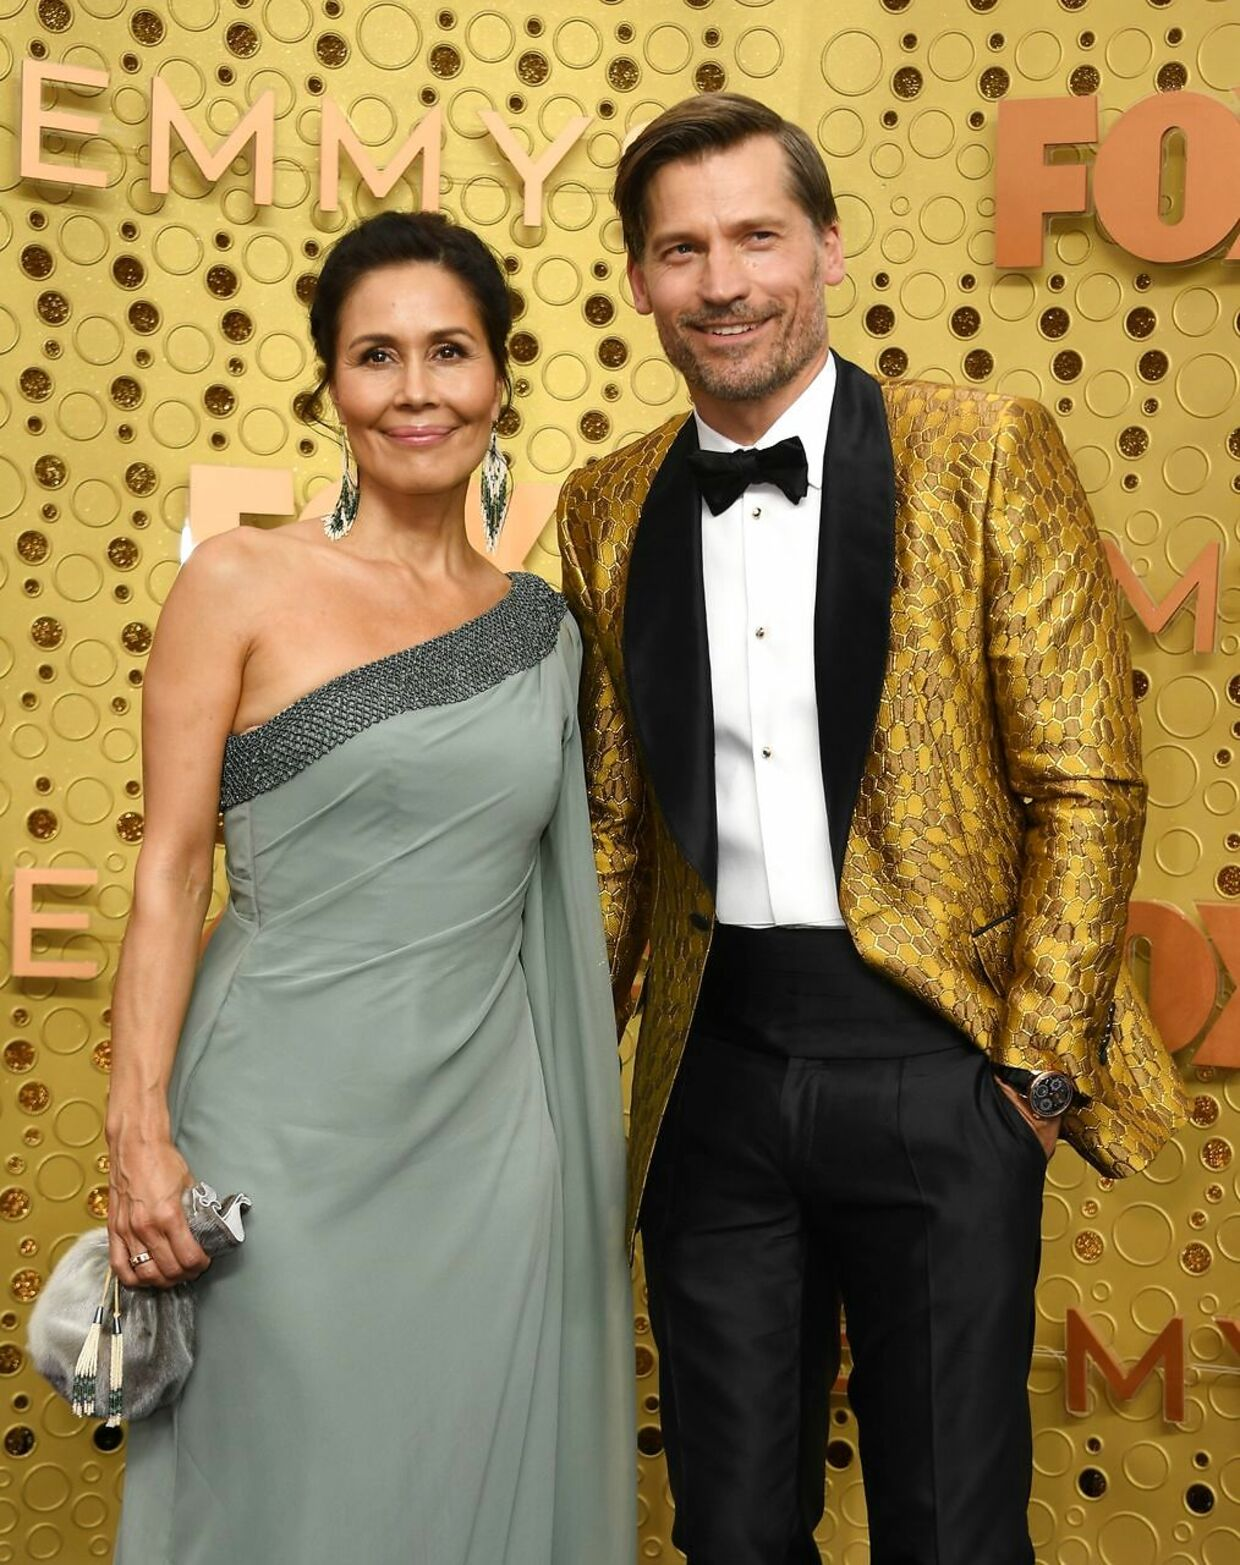 Danish actor Nikolaj Coster-Waldau and his wife Nukaaka Coster-Waldau arrive for the 71st Emmy Awards at the Microsoft Theatre in Los Angeles on September 22, 2019. (Photo by VALERIE MACON / AFP)